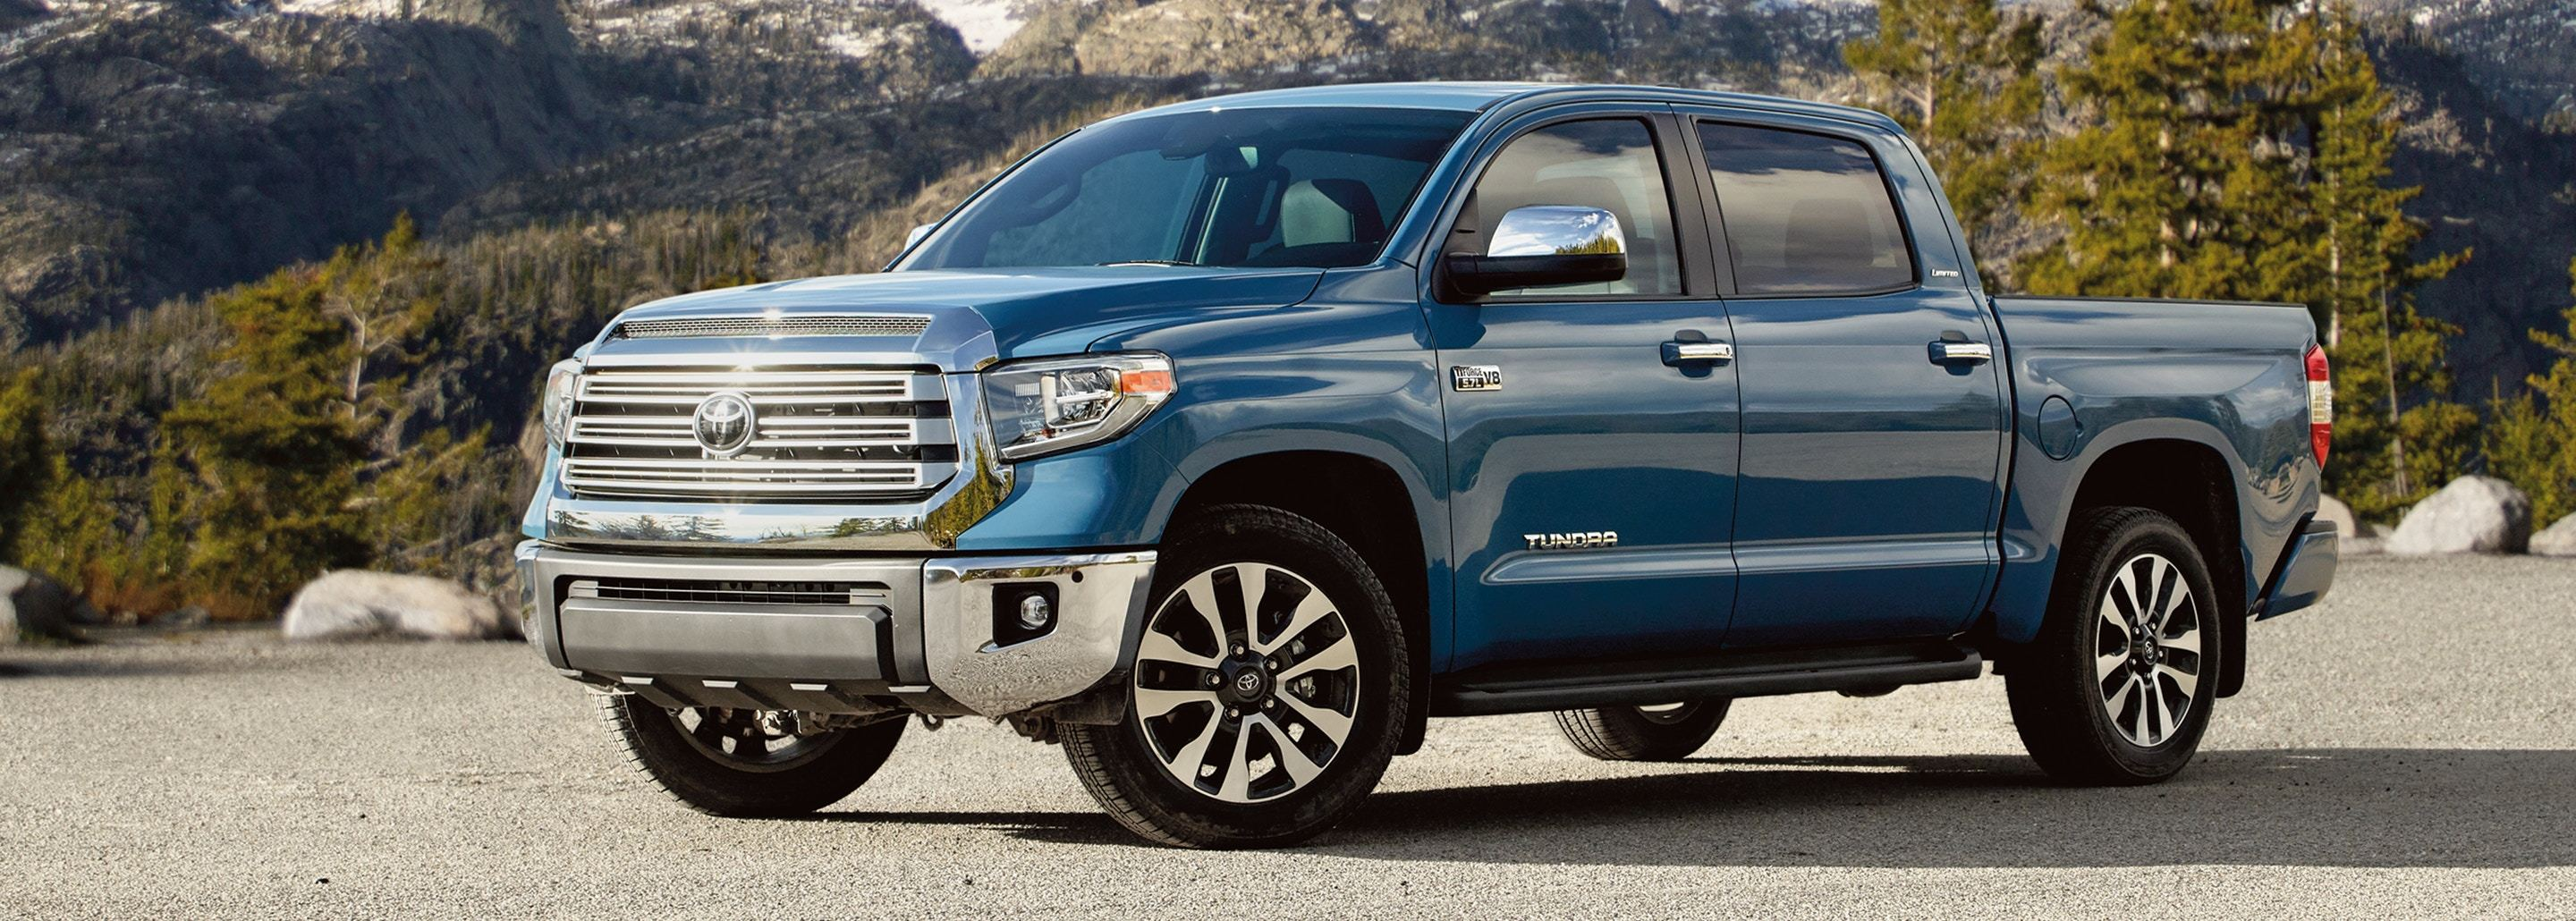 2020 Toyota Tundra vs 2020 Ford F-150 near Skiatook, OK